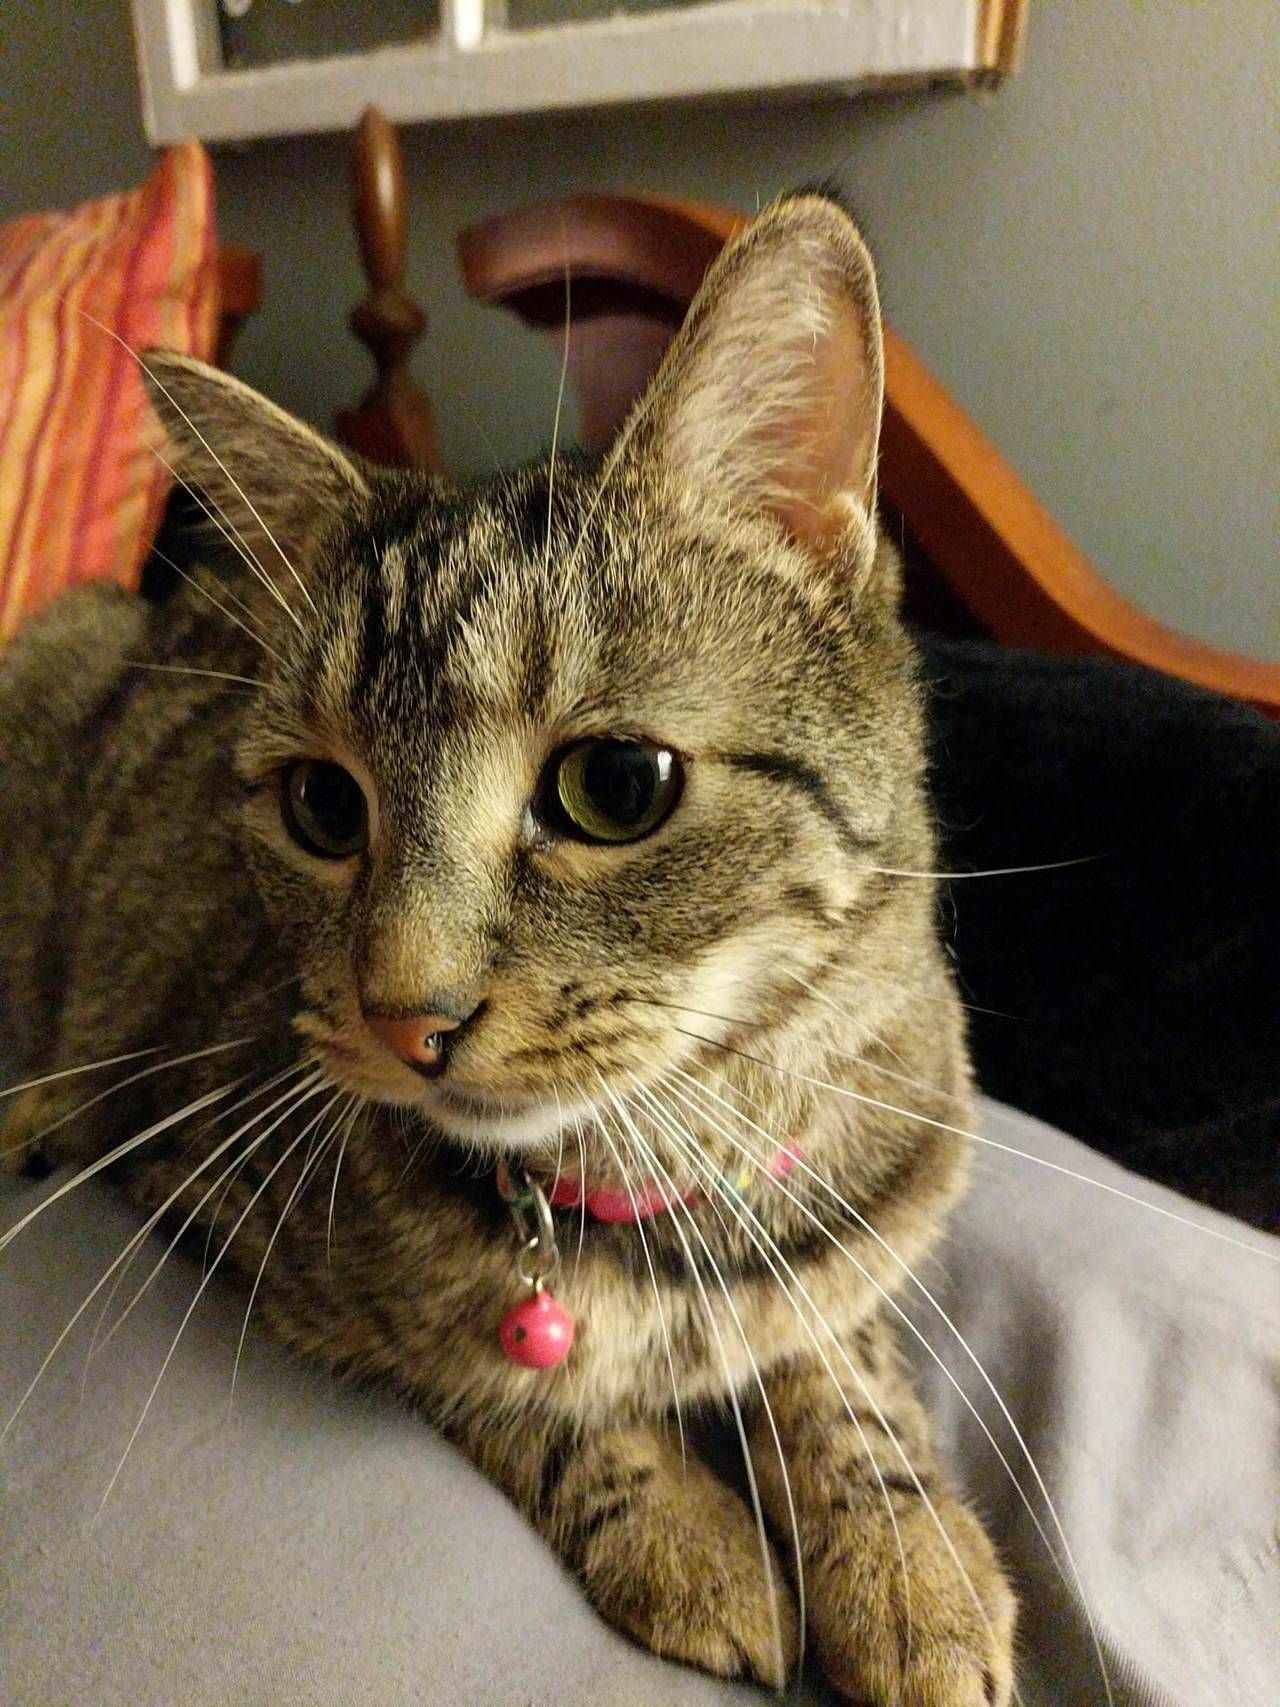 This Is Ellie My Wife Never Had Cats Growing Up And Was Skeptical About It When We Got Married And I Wanted To Adopt A Cat Adoption Cats Cute Cats And